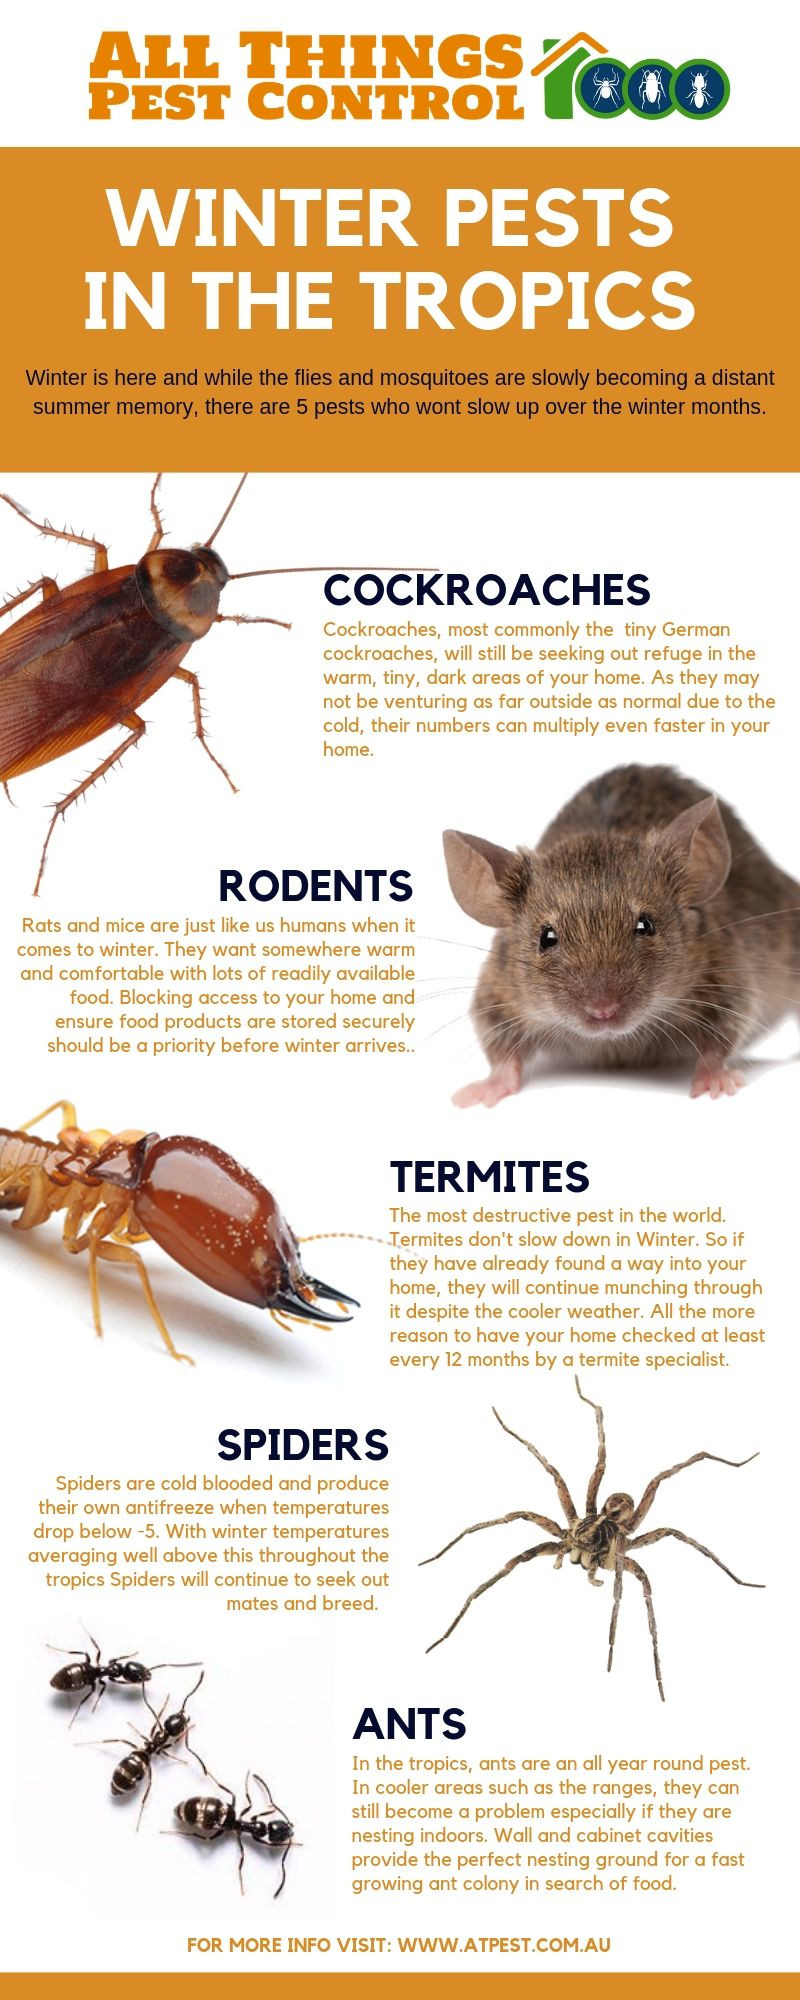 All Things Pest Control Mackay Winter Pests